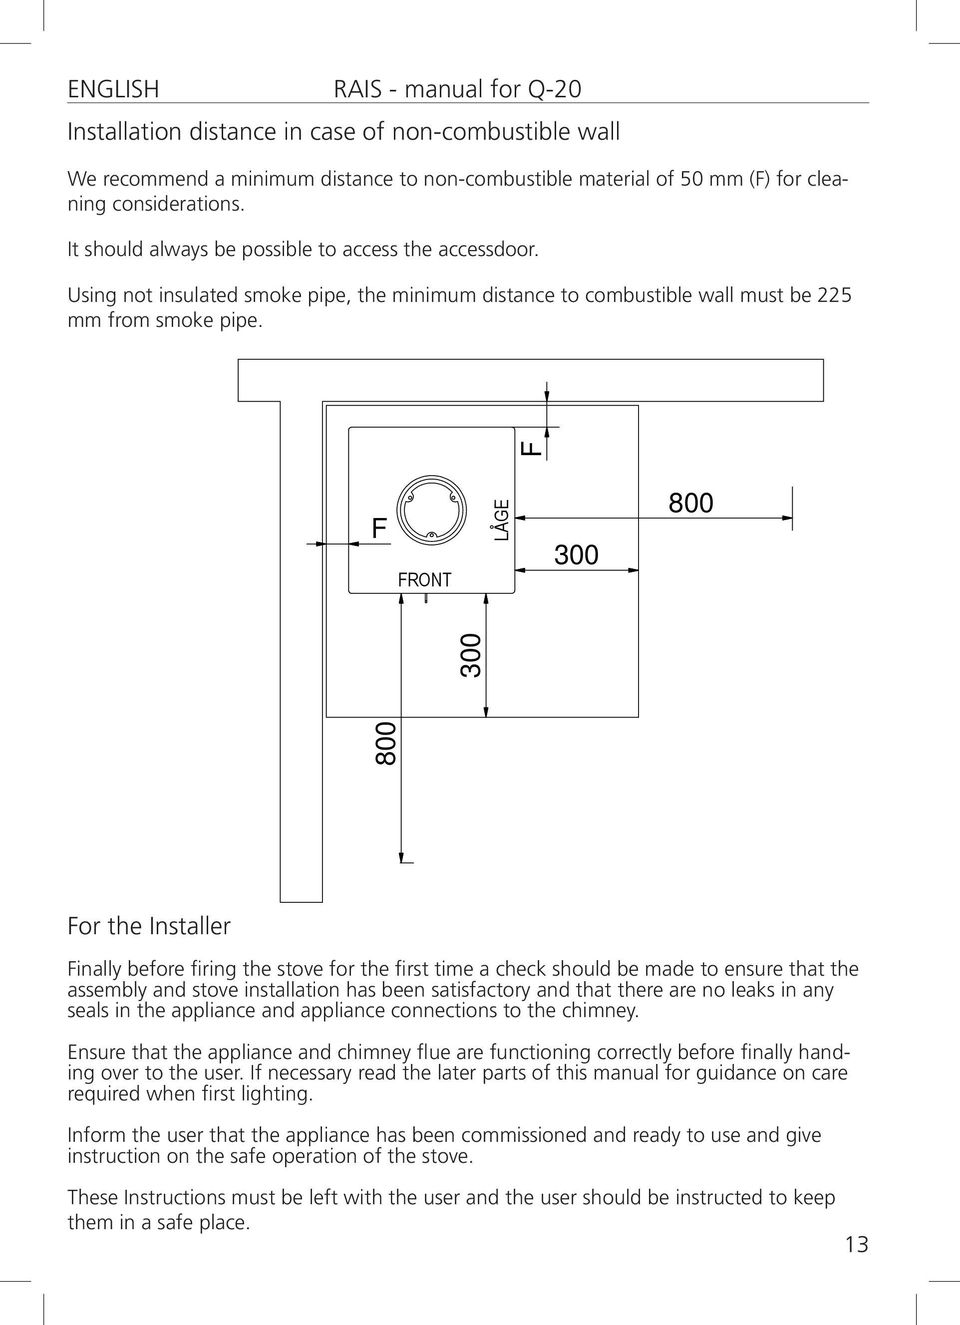 F F 300 800 300 800 For the Installer Finally before firing the stove for the first time a check should be made to ensure that the assembly and stove installation has been satisfactory and that there